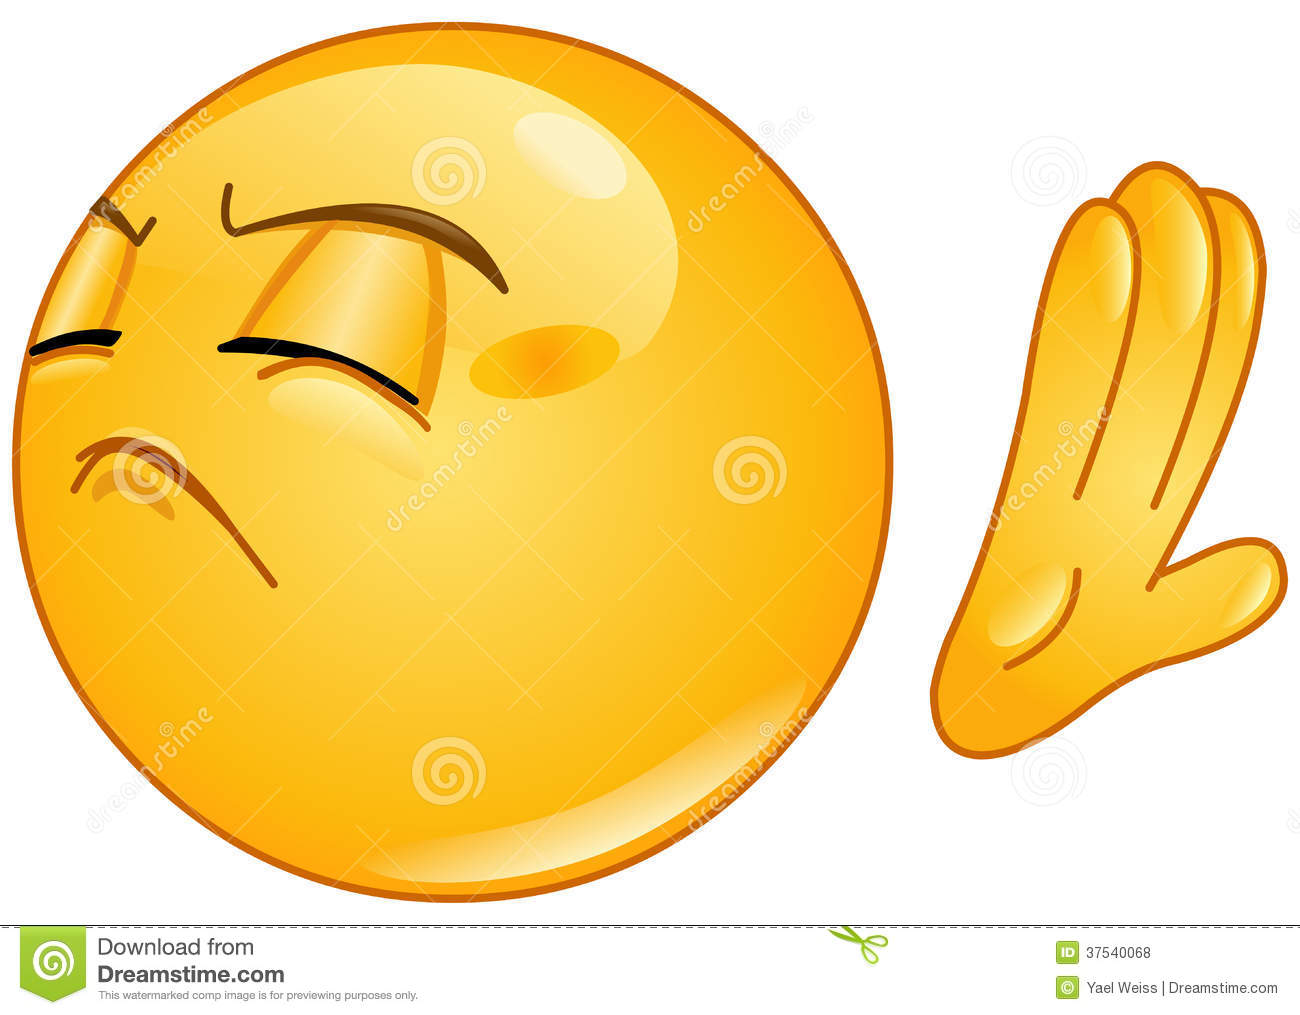 Sad Emoticon Wiping Tear Royalty Free Cliparts, Vectors, And Stock ...